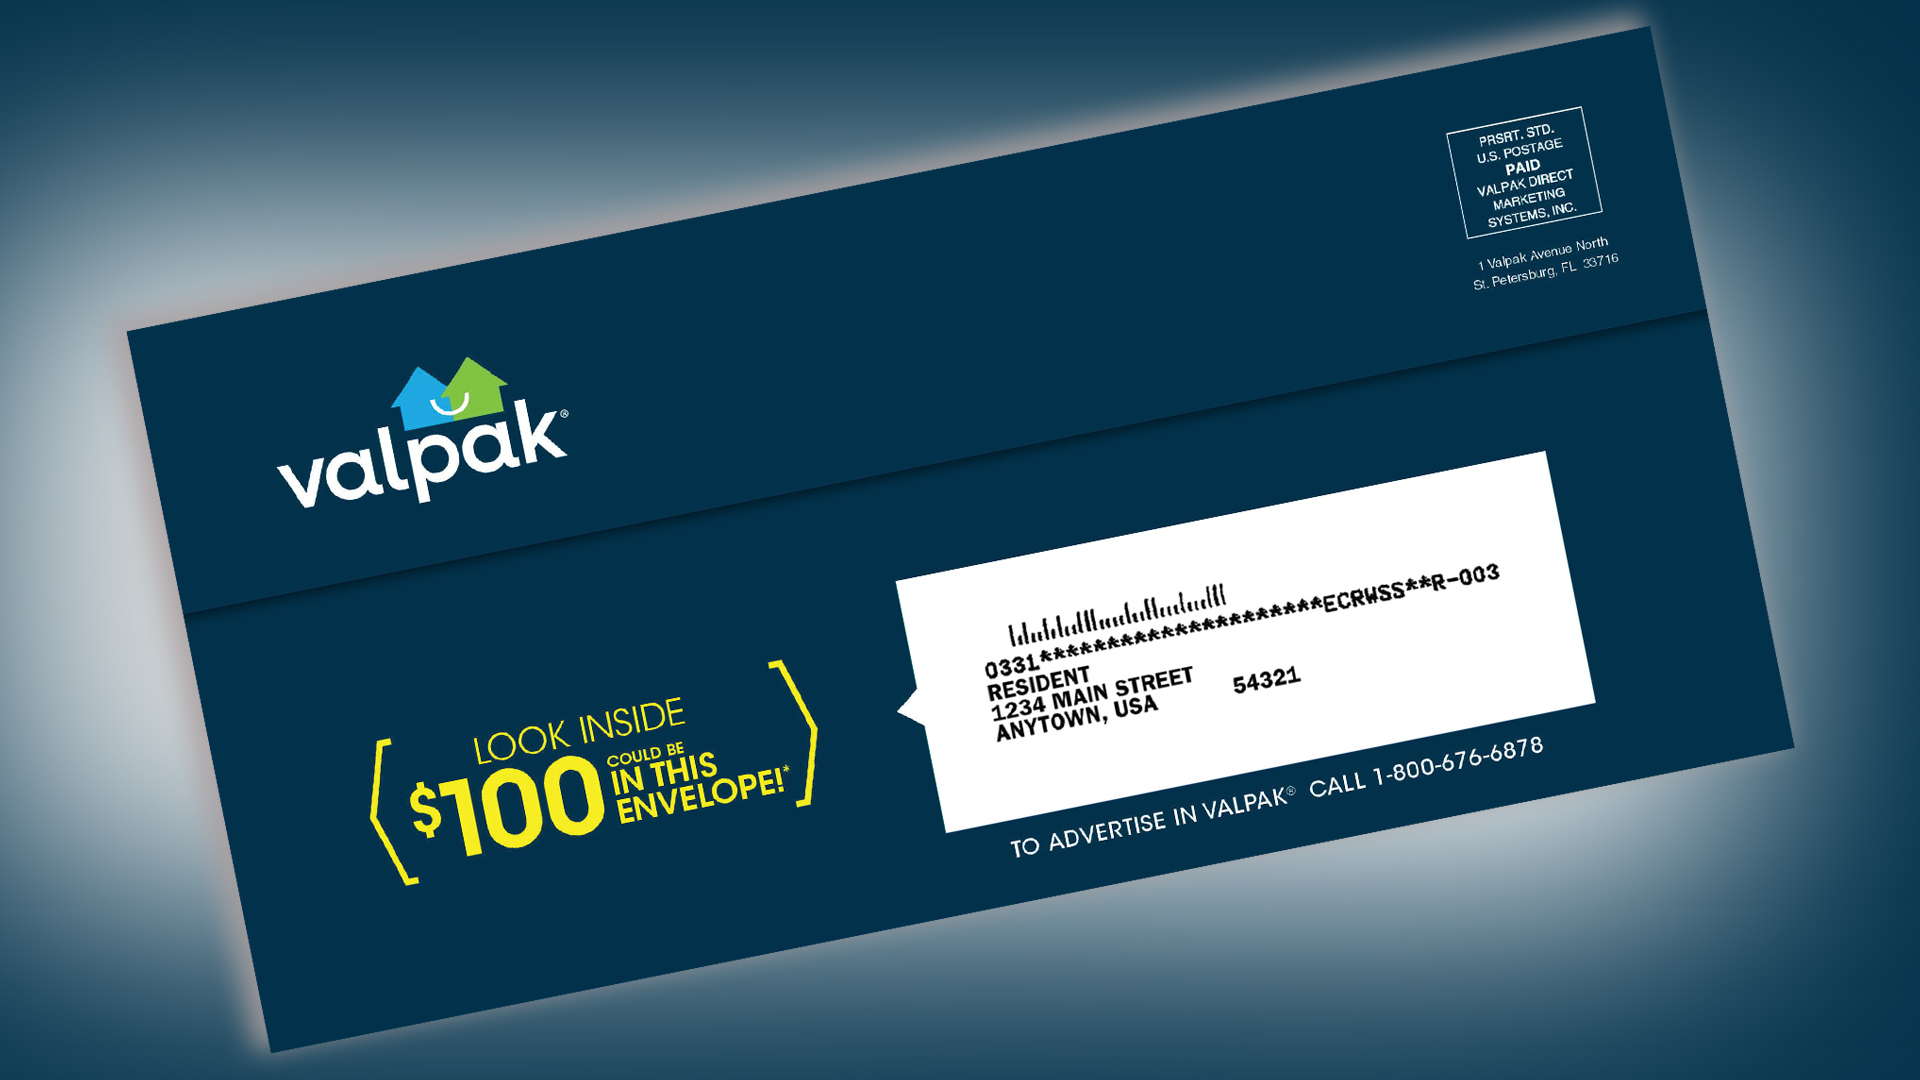 Free money! There might be a $100 check in that Valpak envelope ...